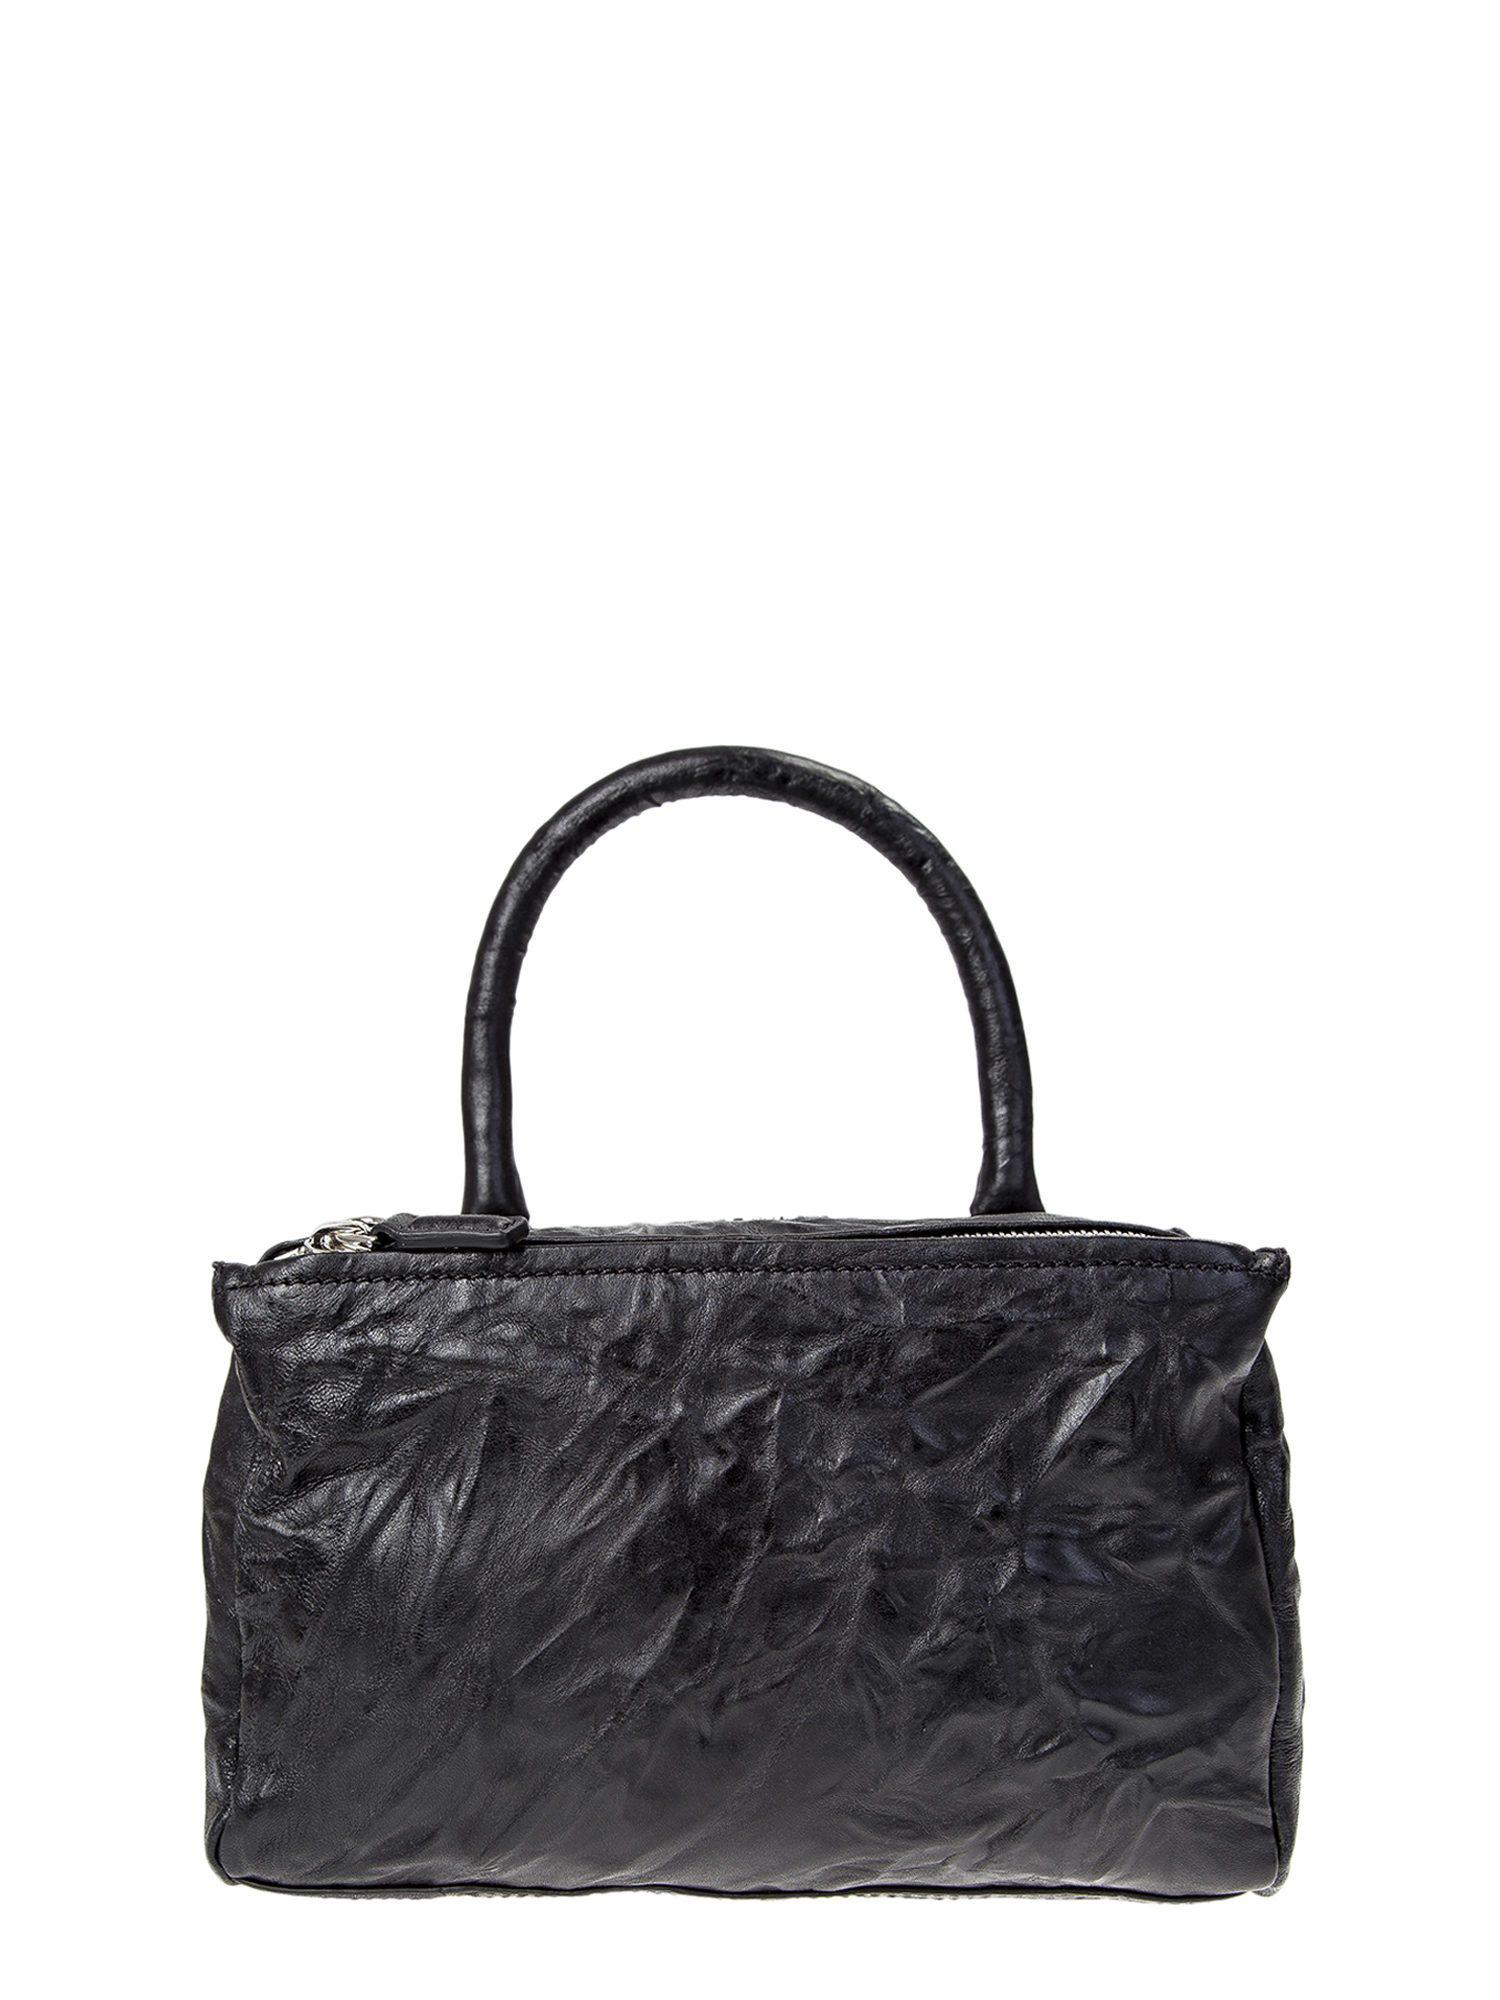 ea2915b96d03 Givenchy Washed Leather Pandora Small Bag in Black - Lyst